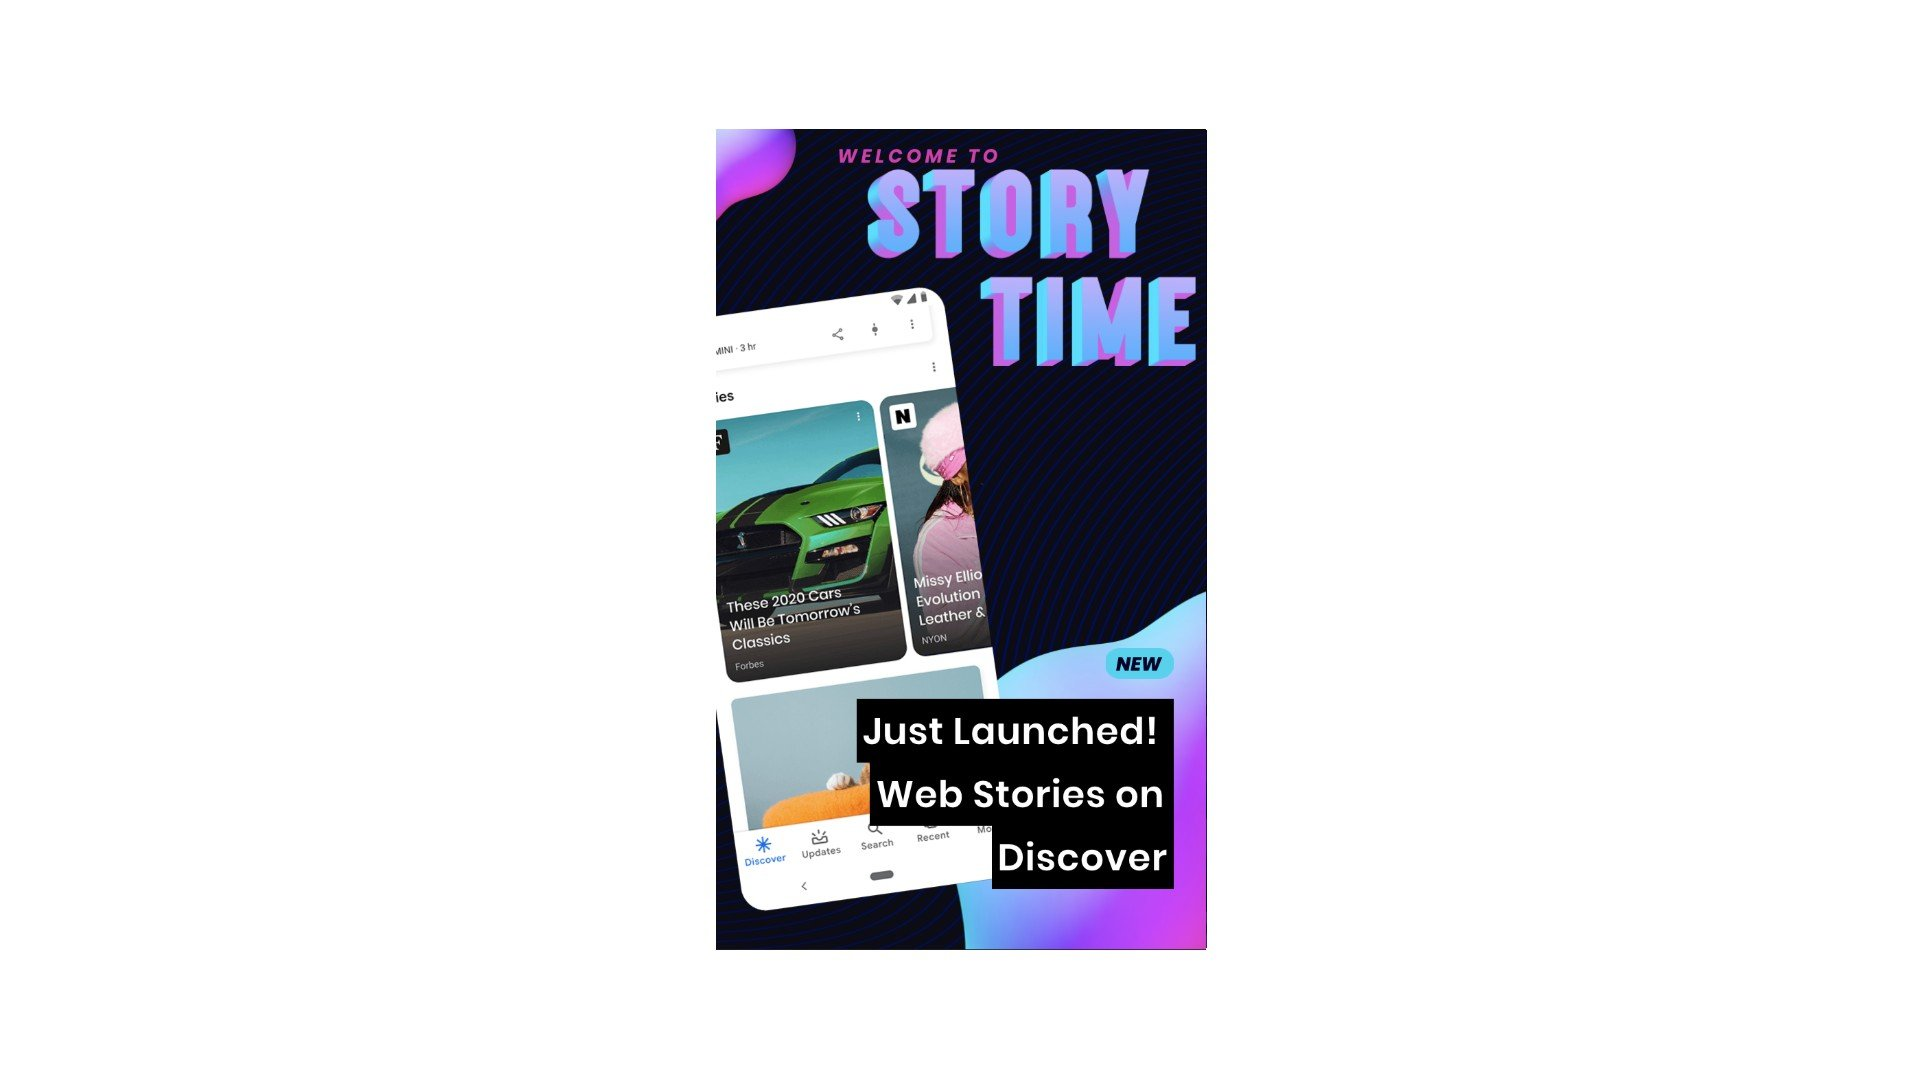 New in Web Stories: Discover, WordPress and quizzes